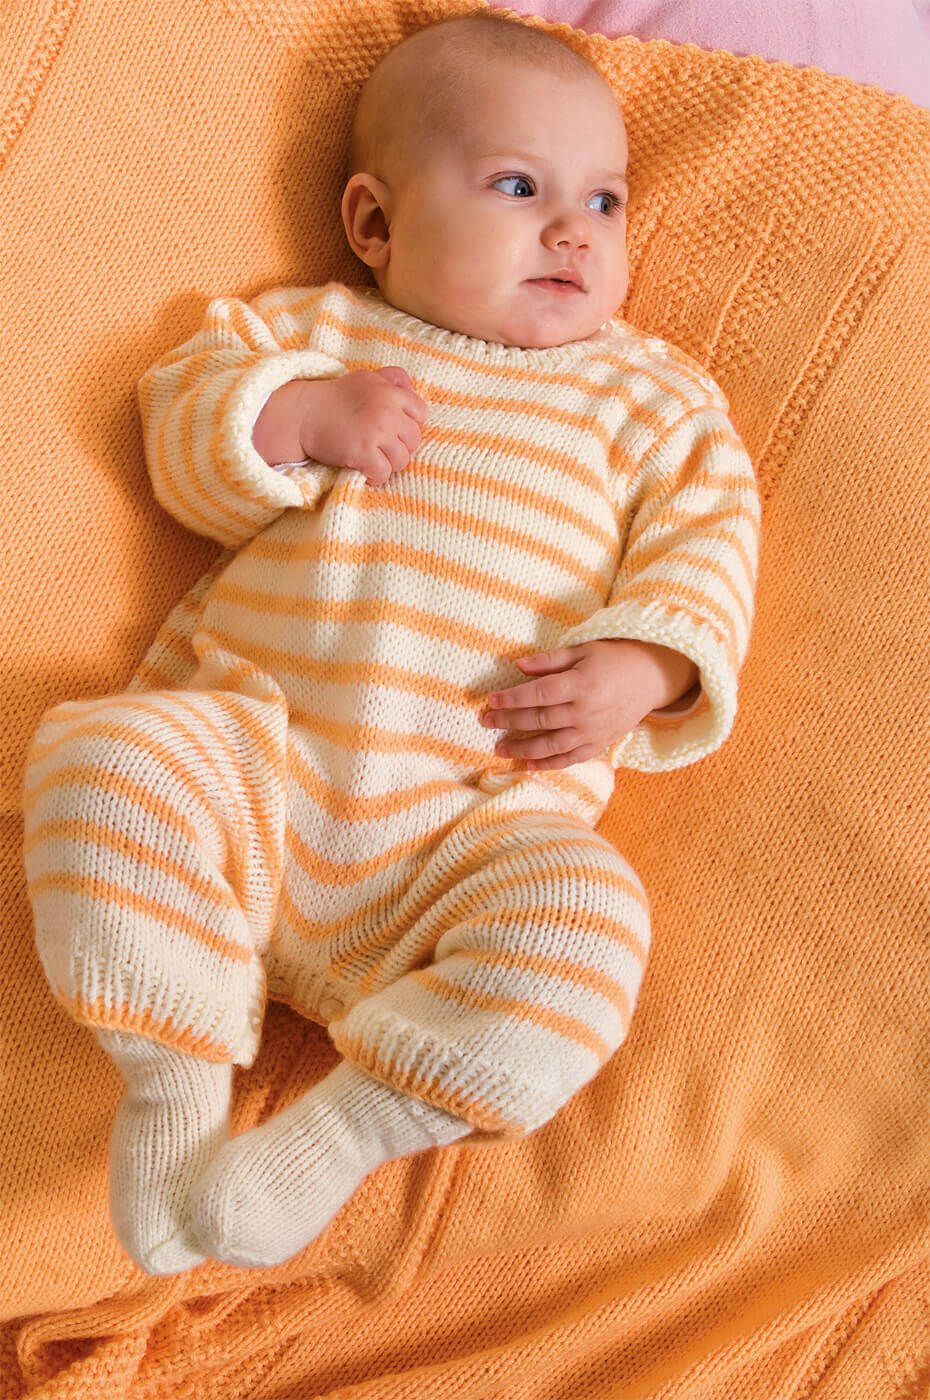 Baby-Strampler | Pinterest | Babies, Baby knitting and Pdf